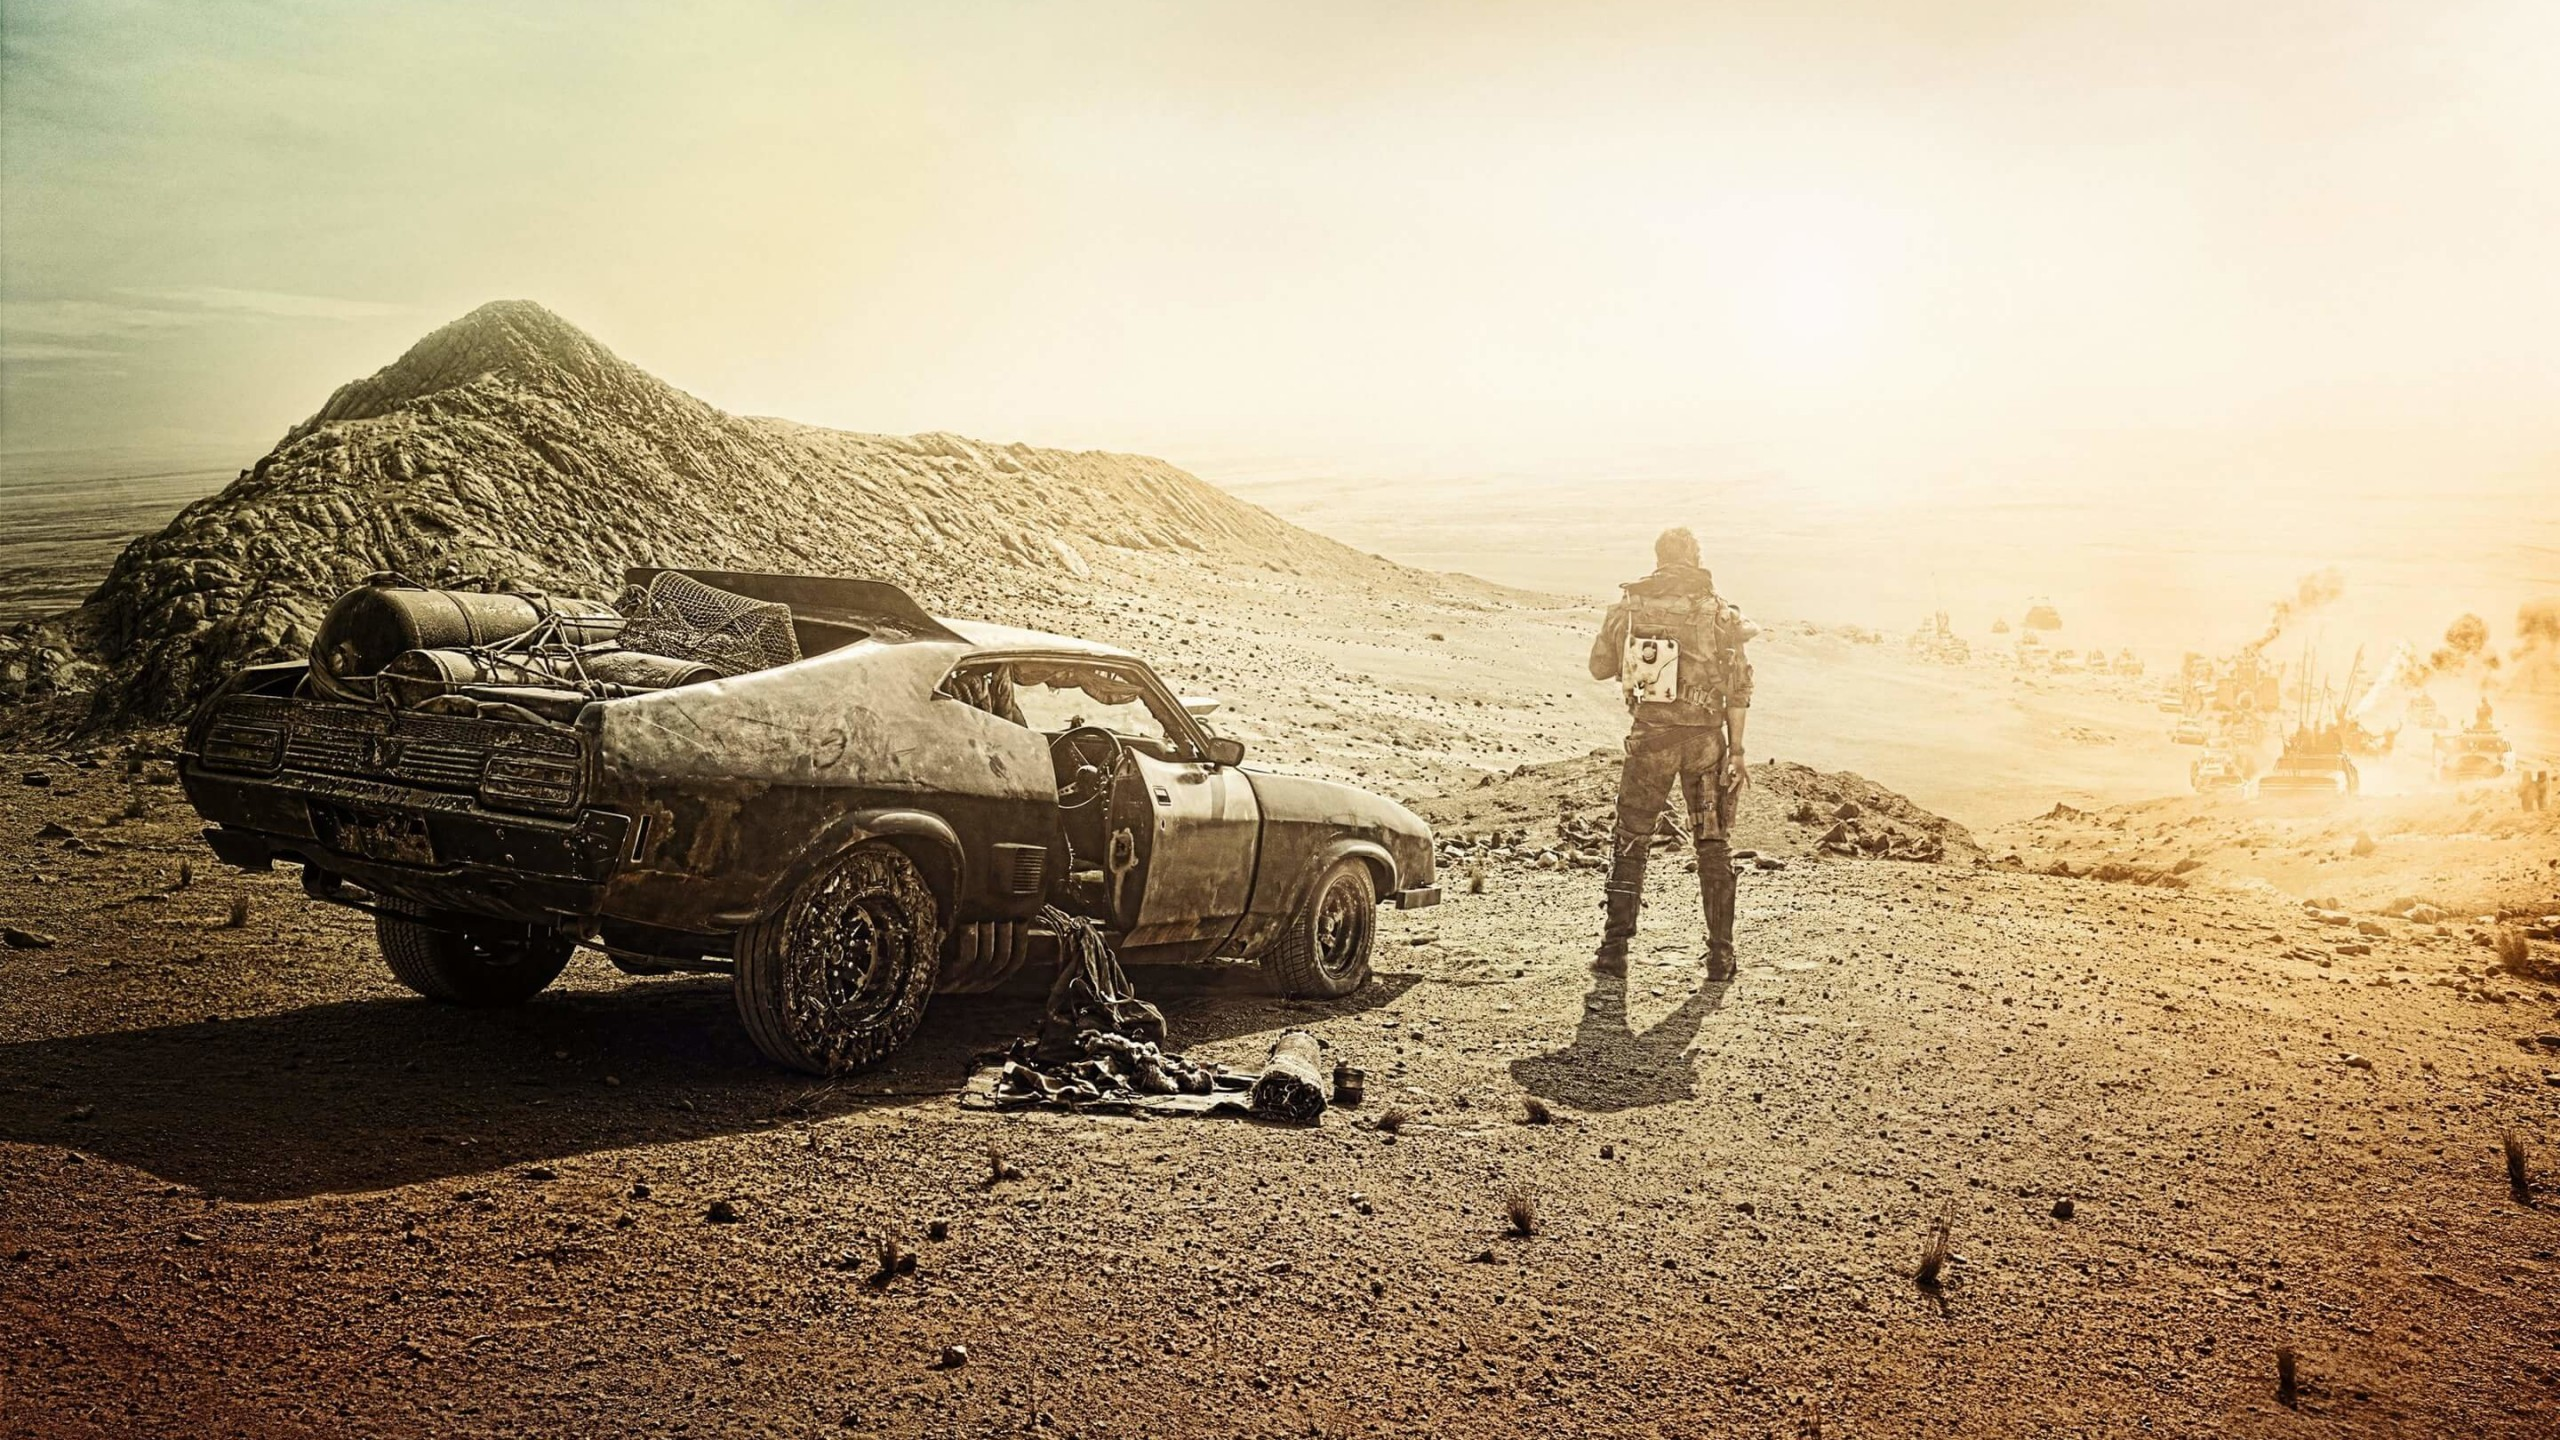 Mad Max Fury Road Movie Wallpaper for Desktop 2560x1440